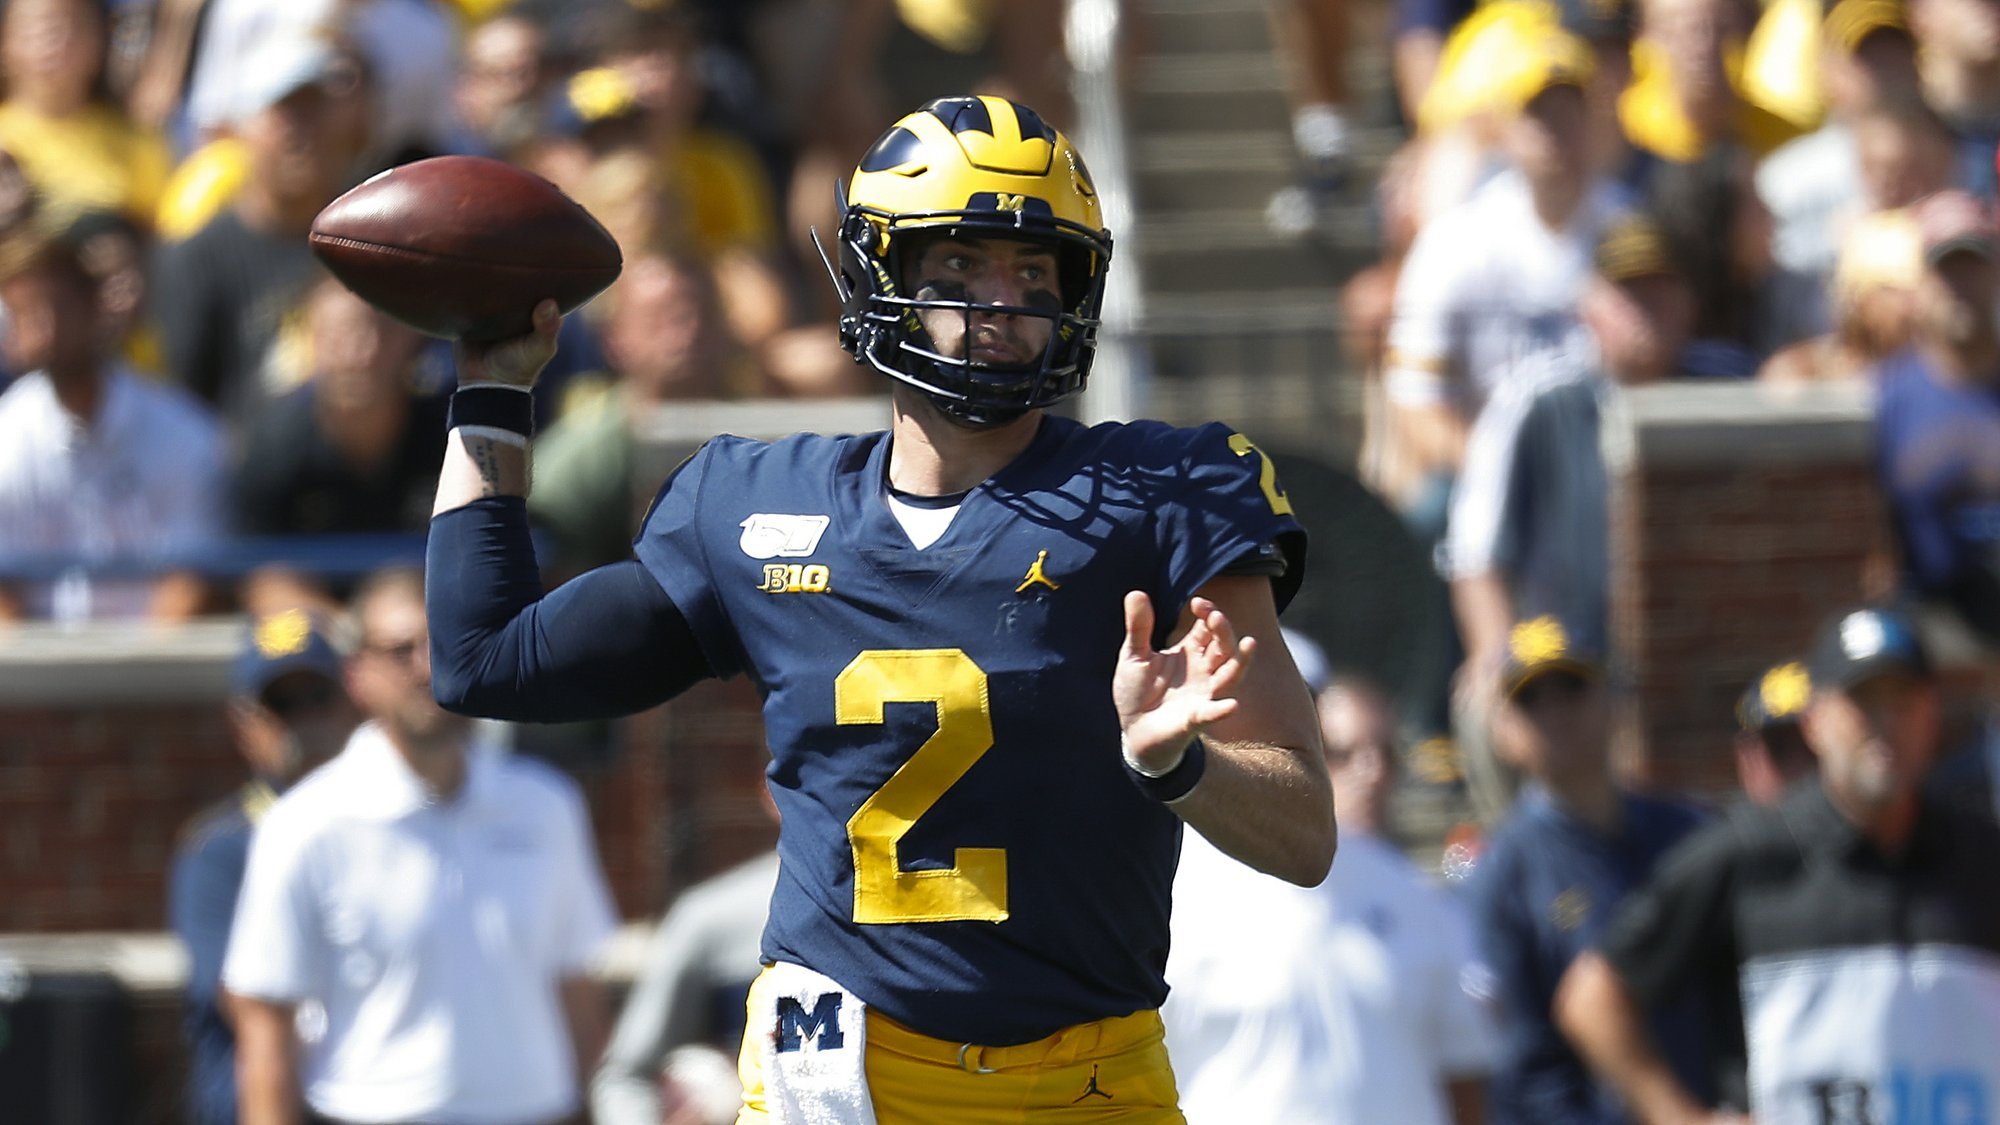 No. 11 Michigan's offense faces tough task vs No. 13 Badgers